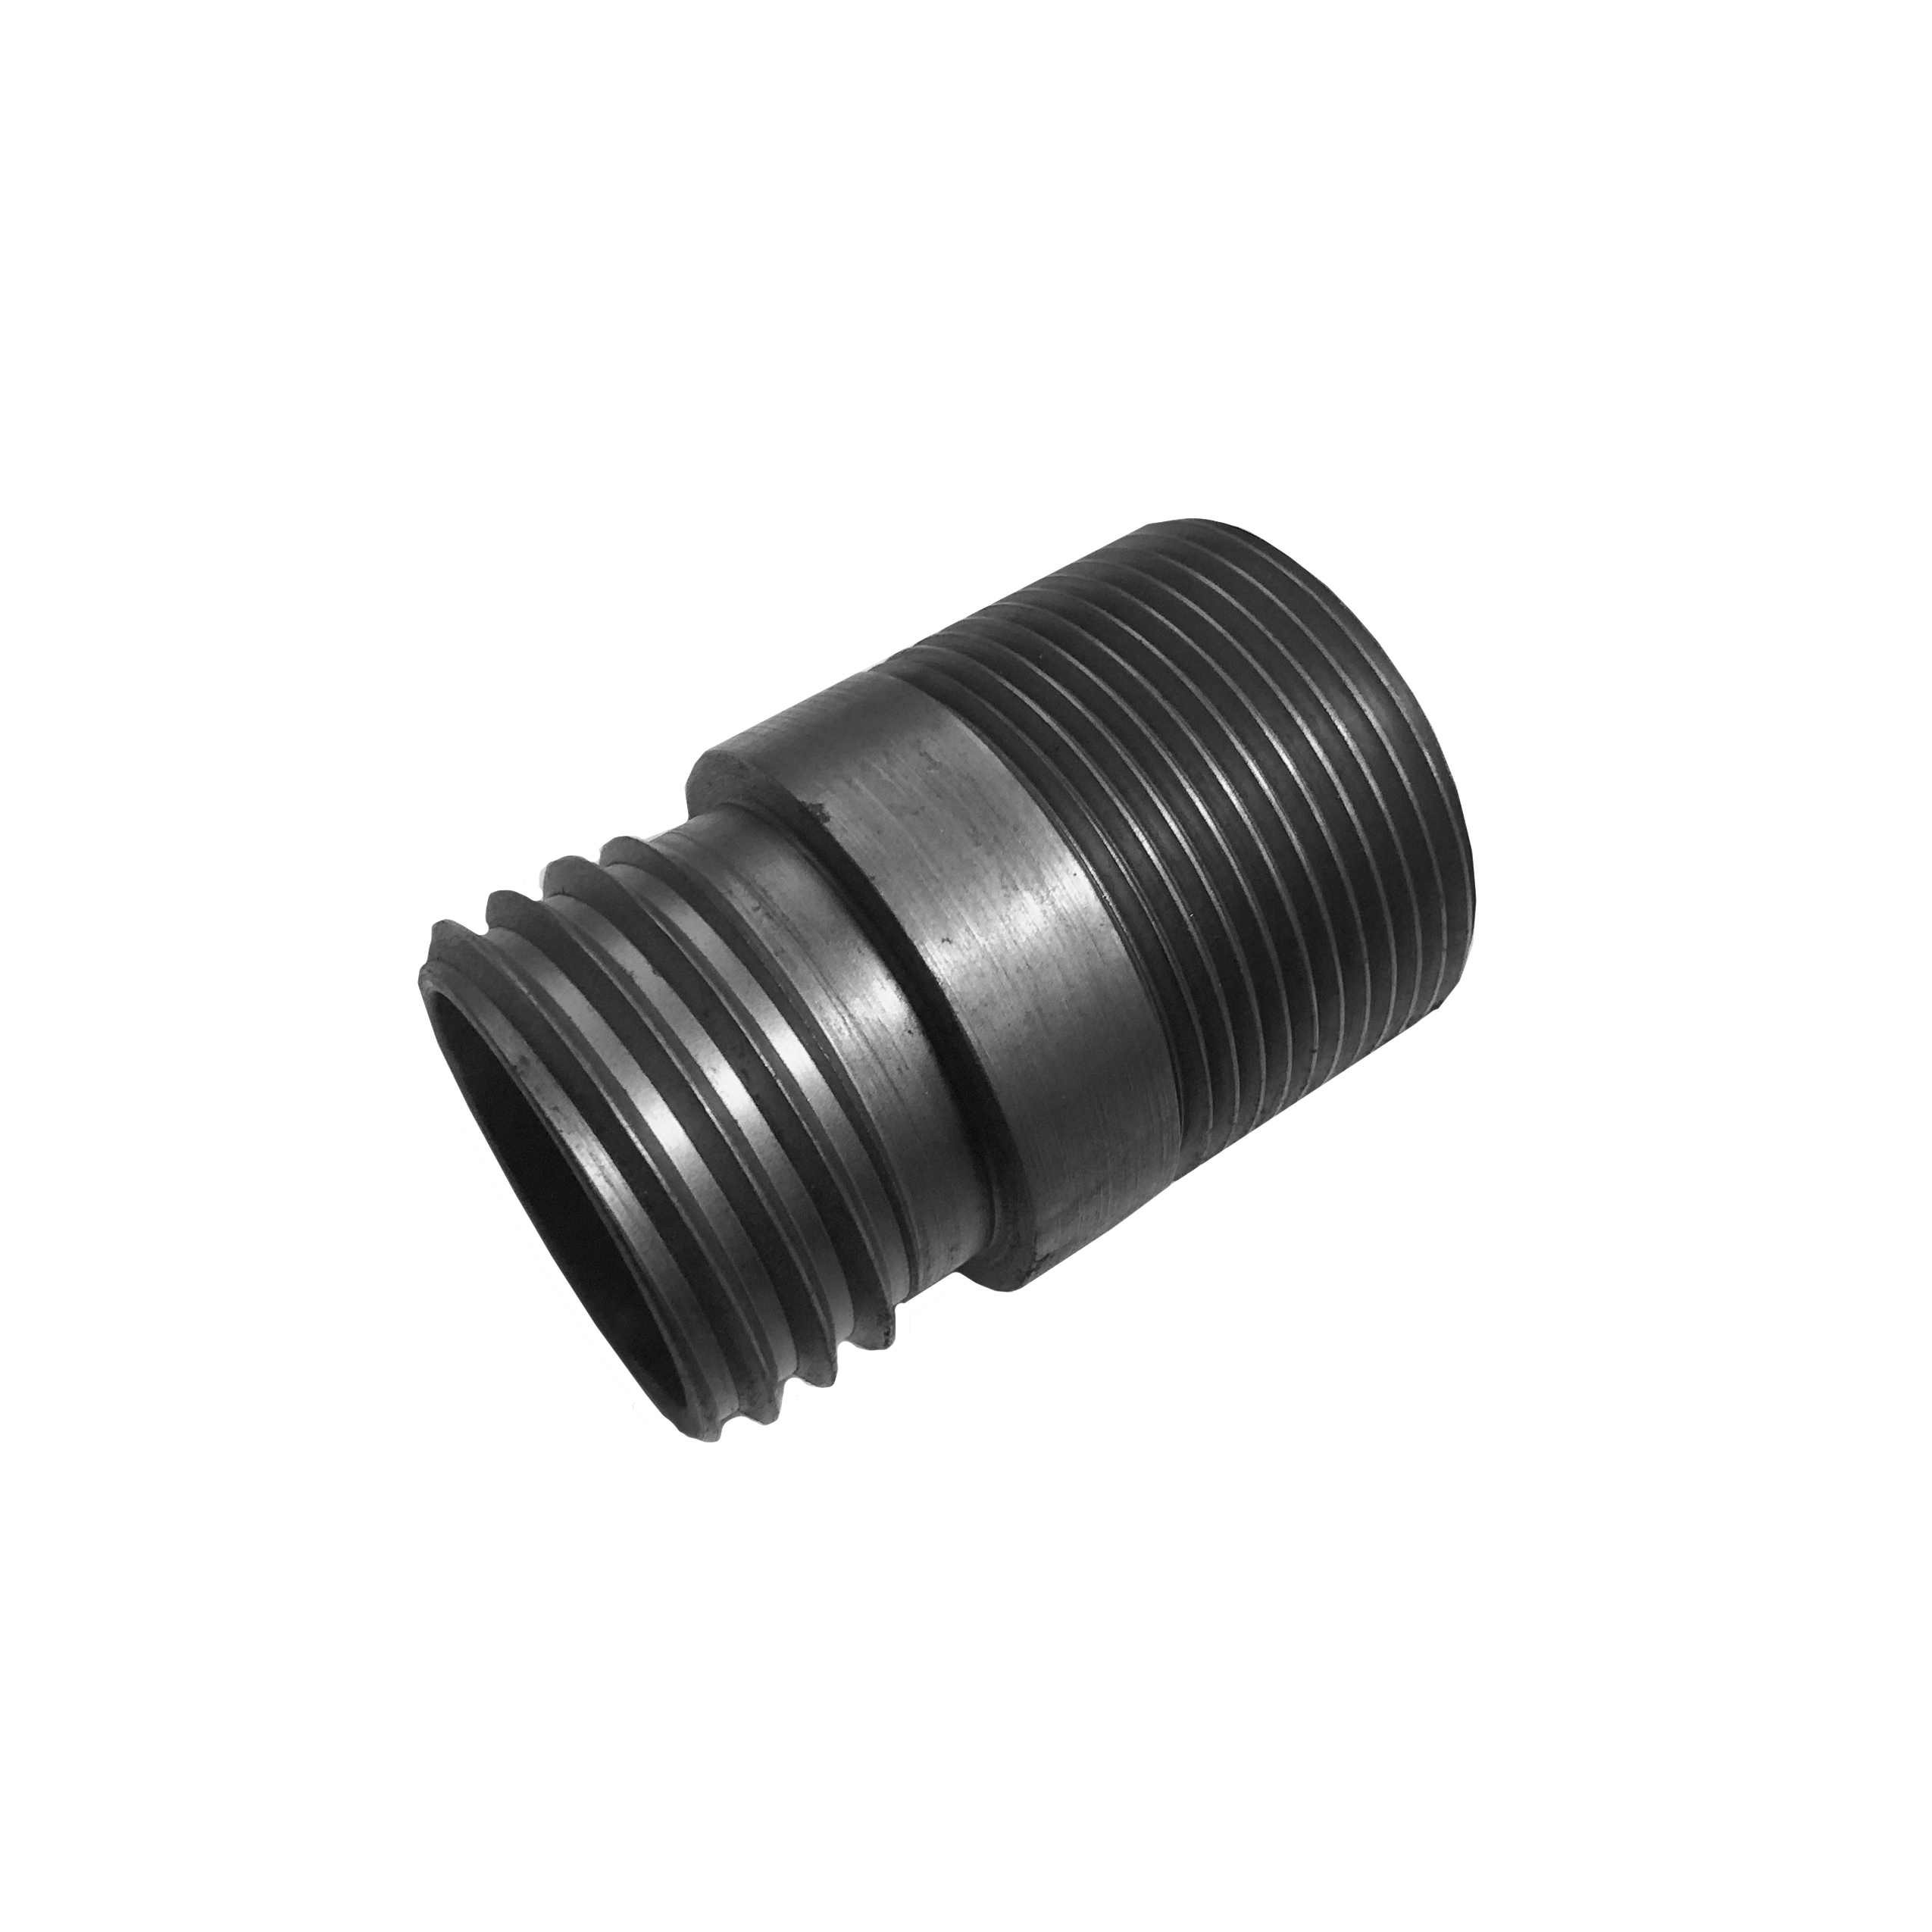 Nozzle Head Shut Off Valve Coupling - 134184/001